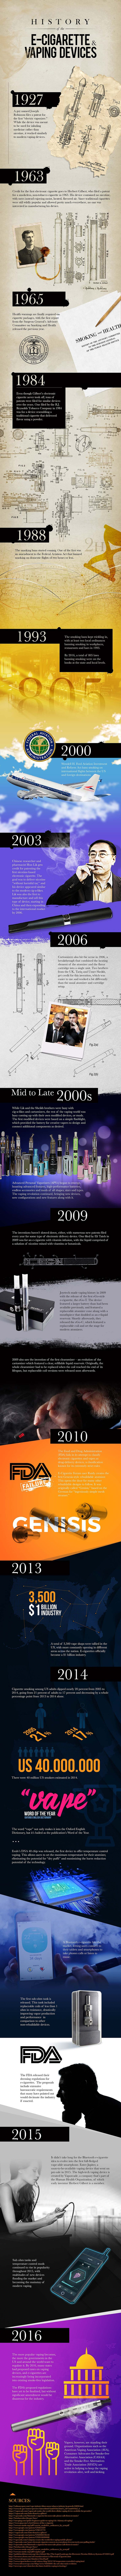 The History of the E-Cigarette and Vaping Devices #Infographic #Cigarette #History